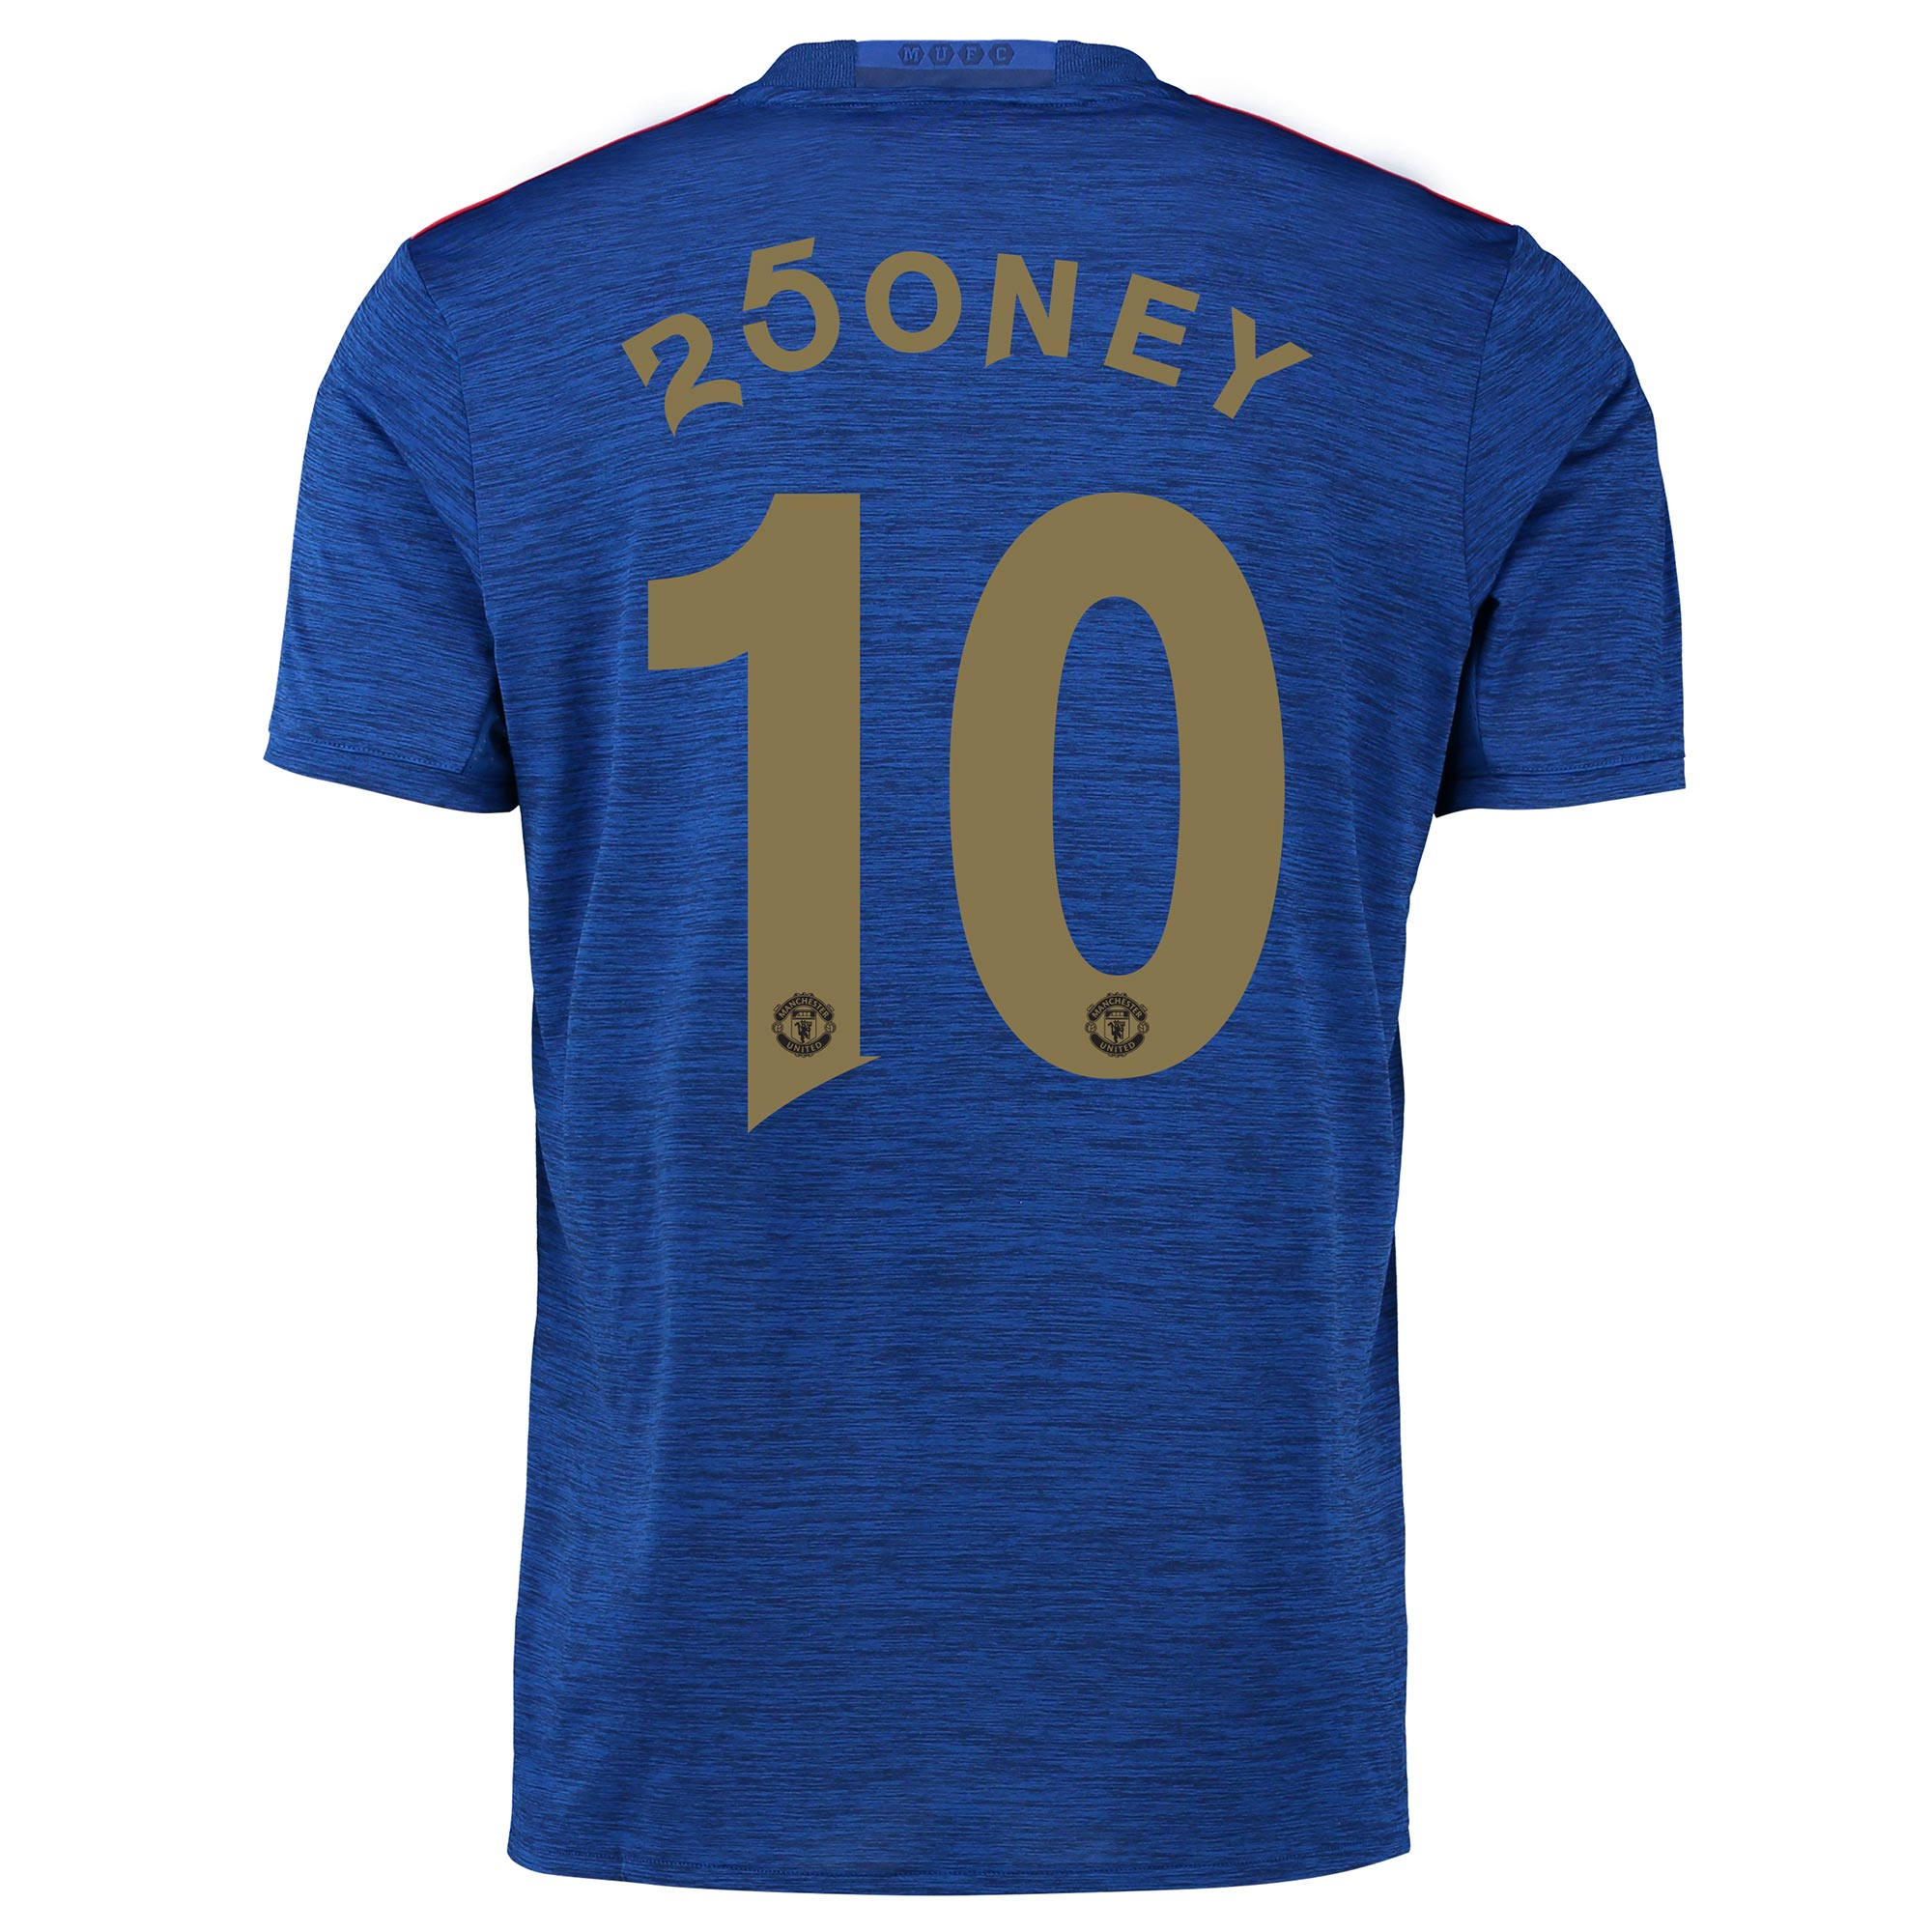 Manchester United Away Shirt 2016-17 with 250ney 10 printing